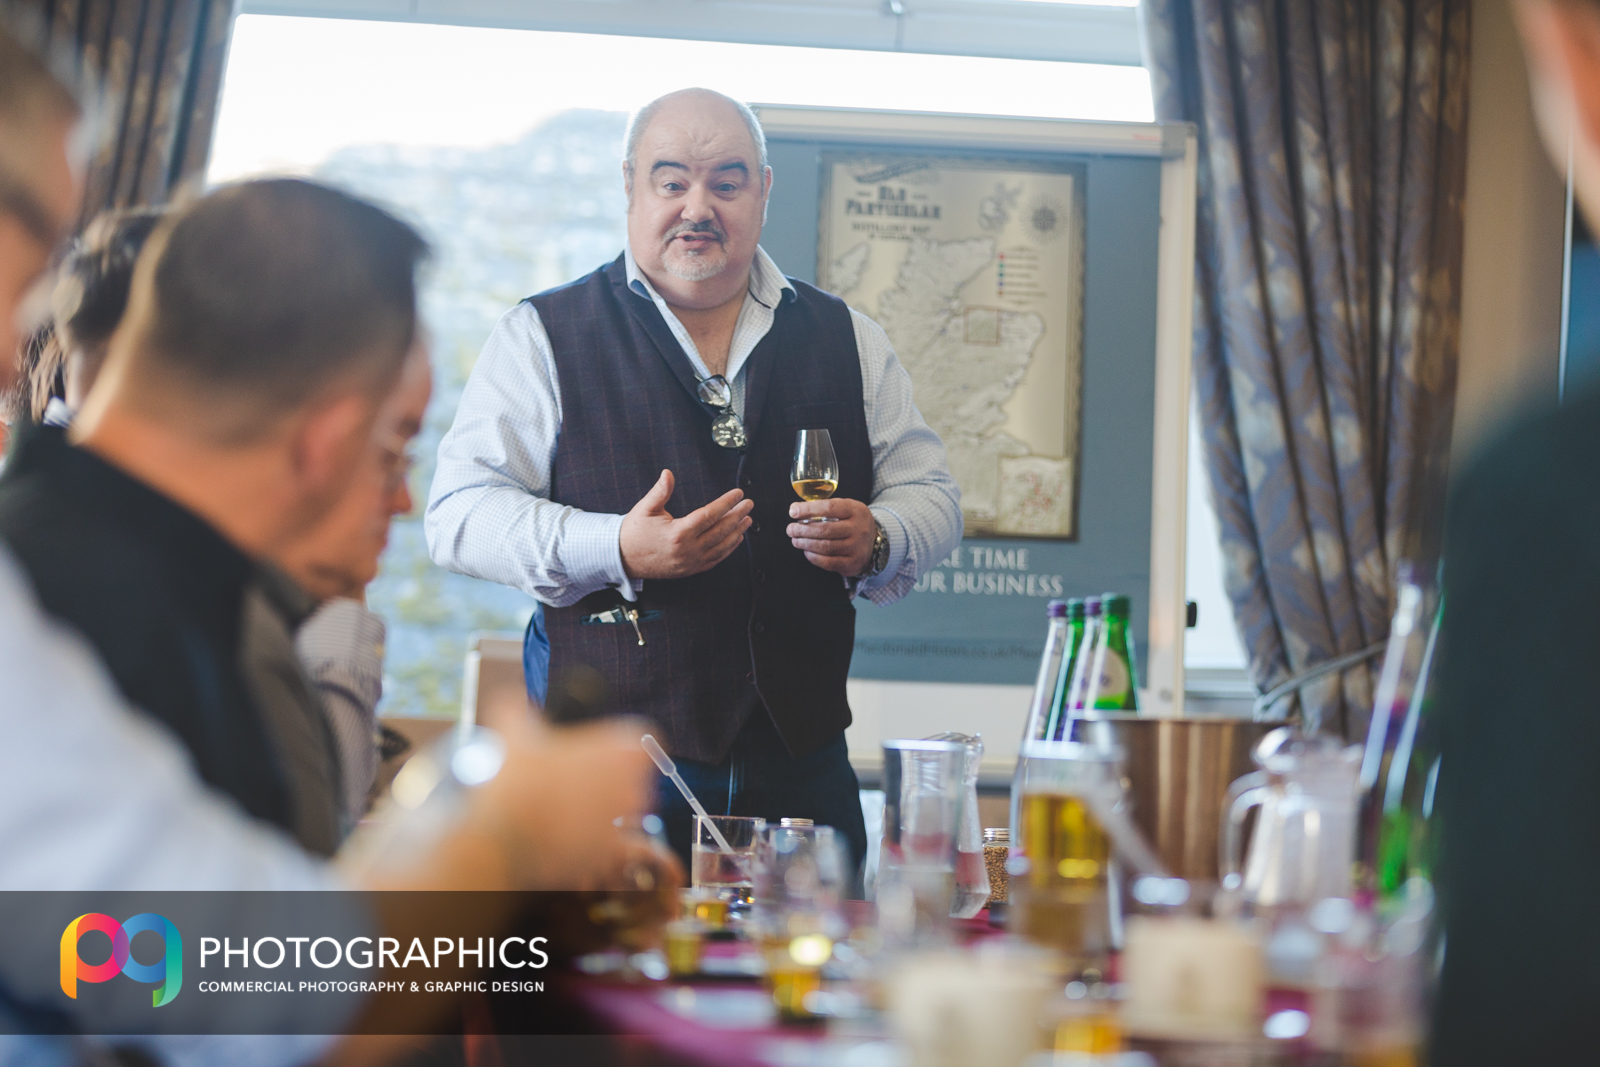 whisky-tasting-event-photography-glasgow-edinburgh-scotland-9.jpg